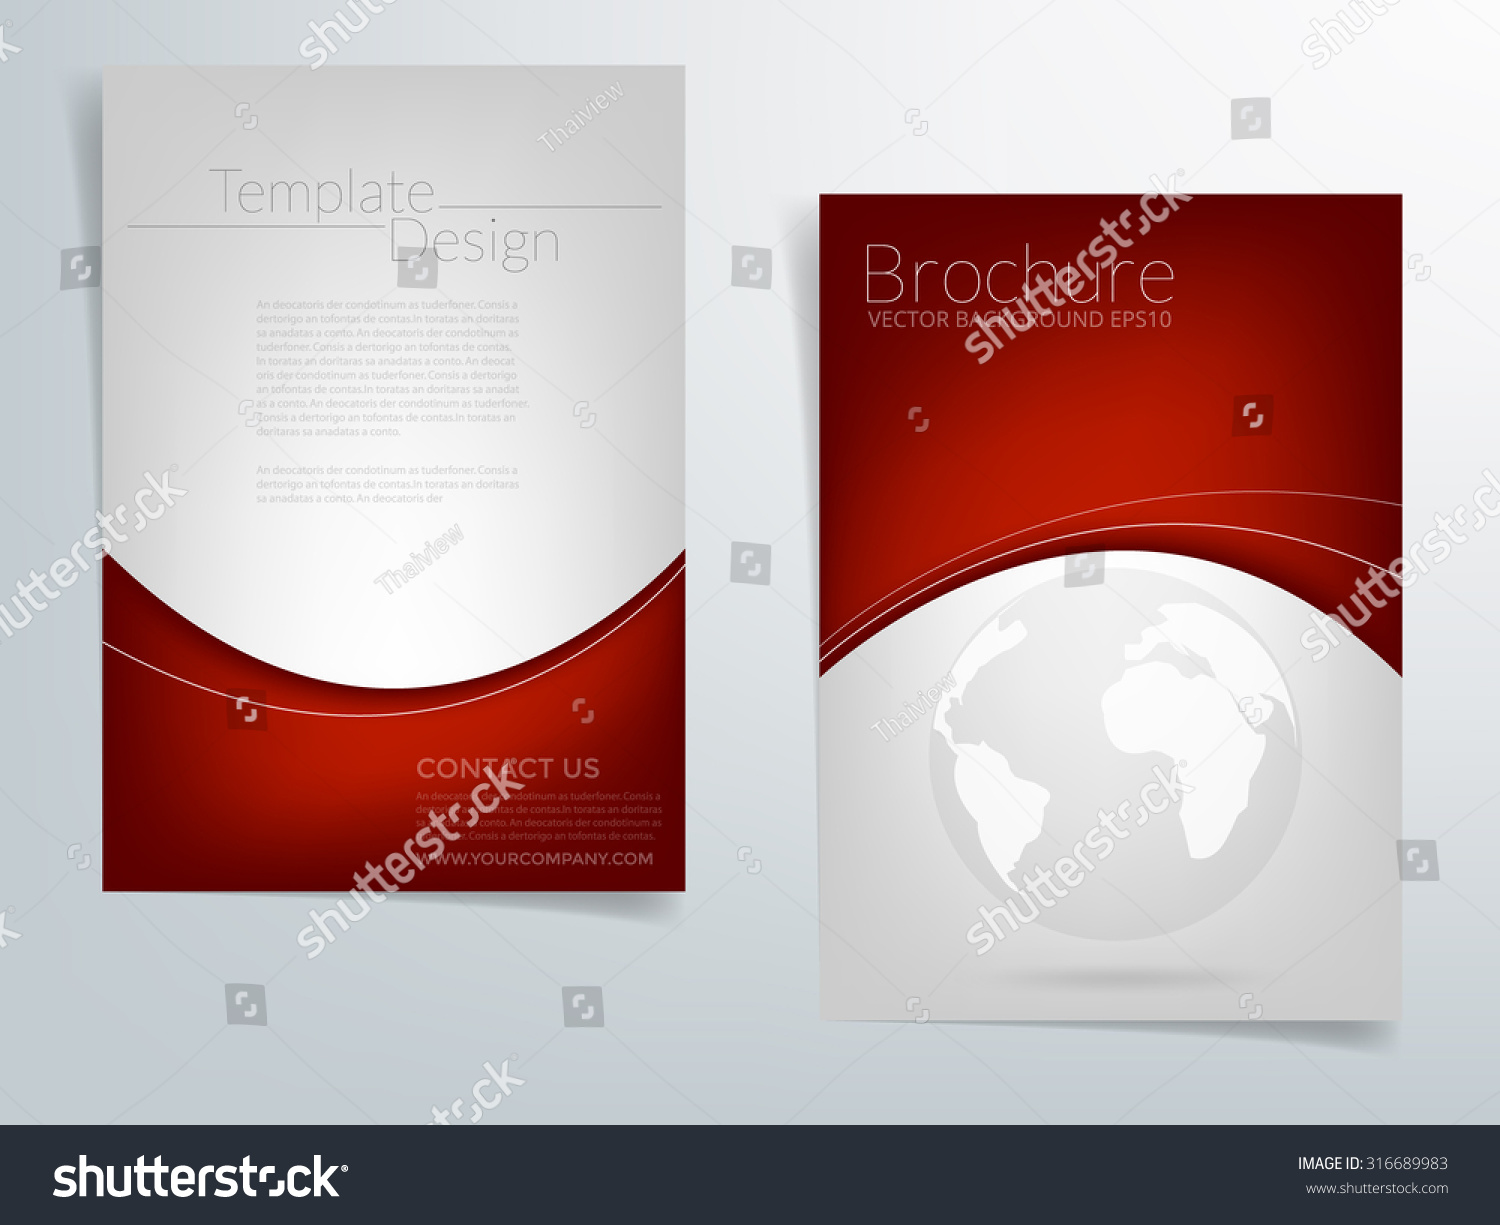 brochure template flyer headline design background stock vector brochure template flyer headline design background red and silver grey element curve and world network